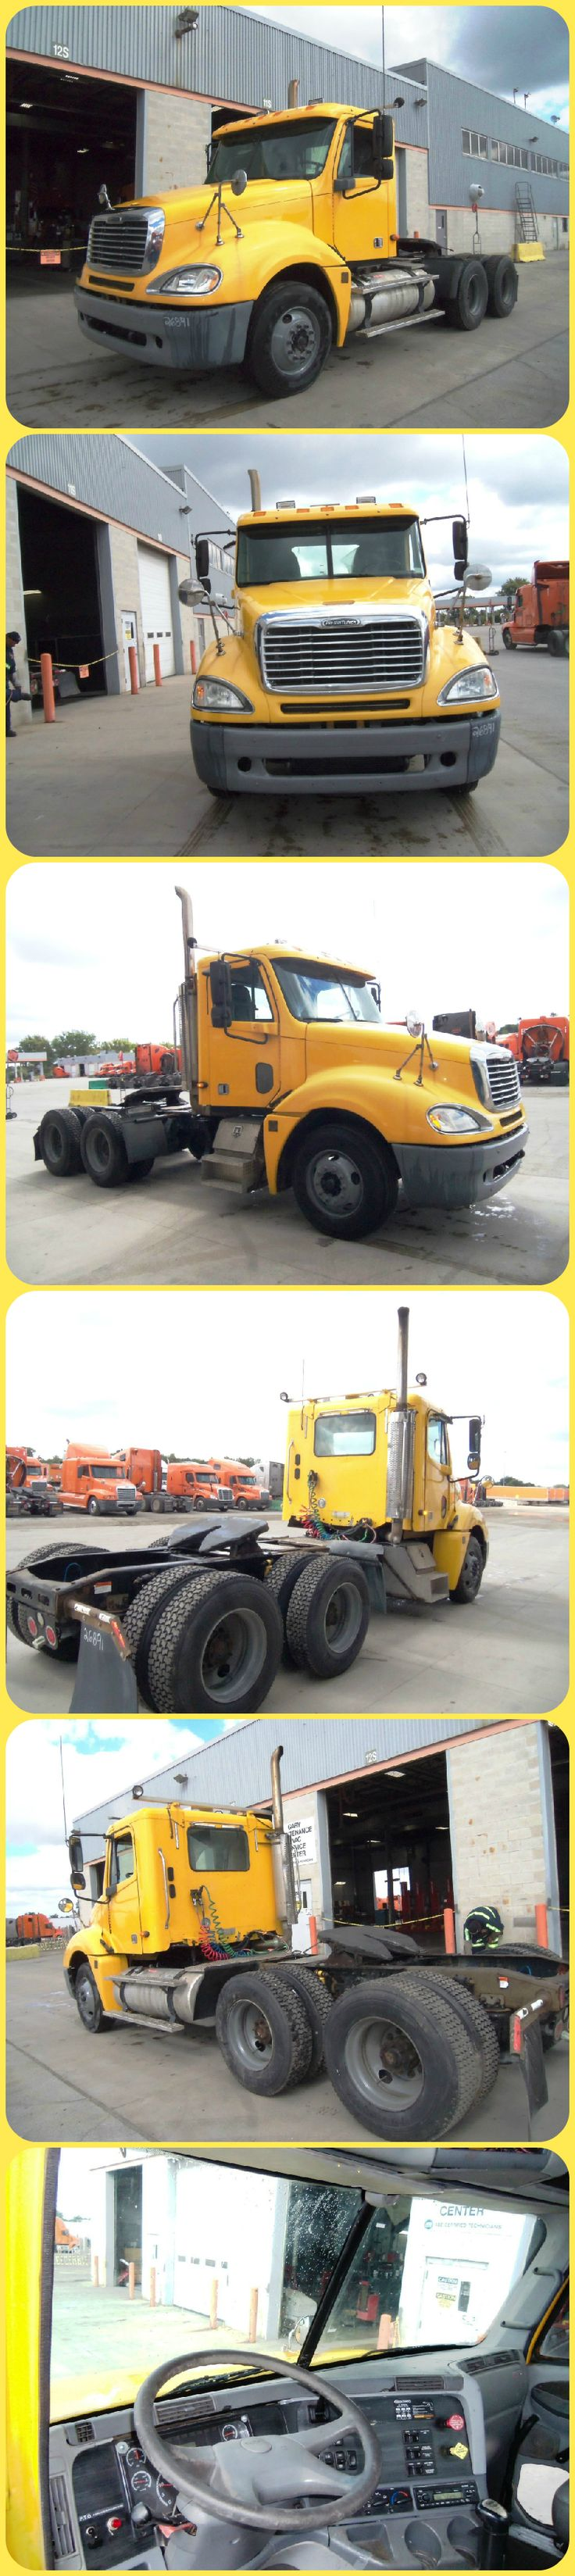 Clearance sale 04 freightliner c120 day cab w 363k miles was